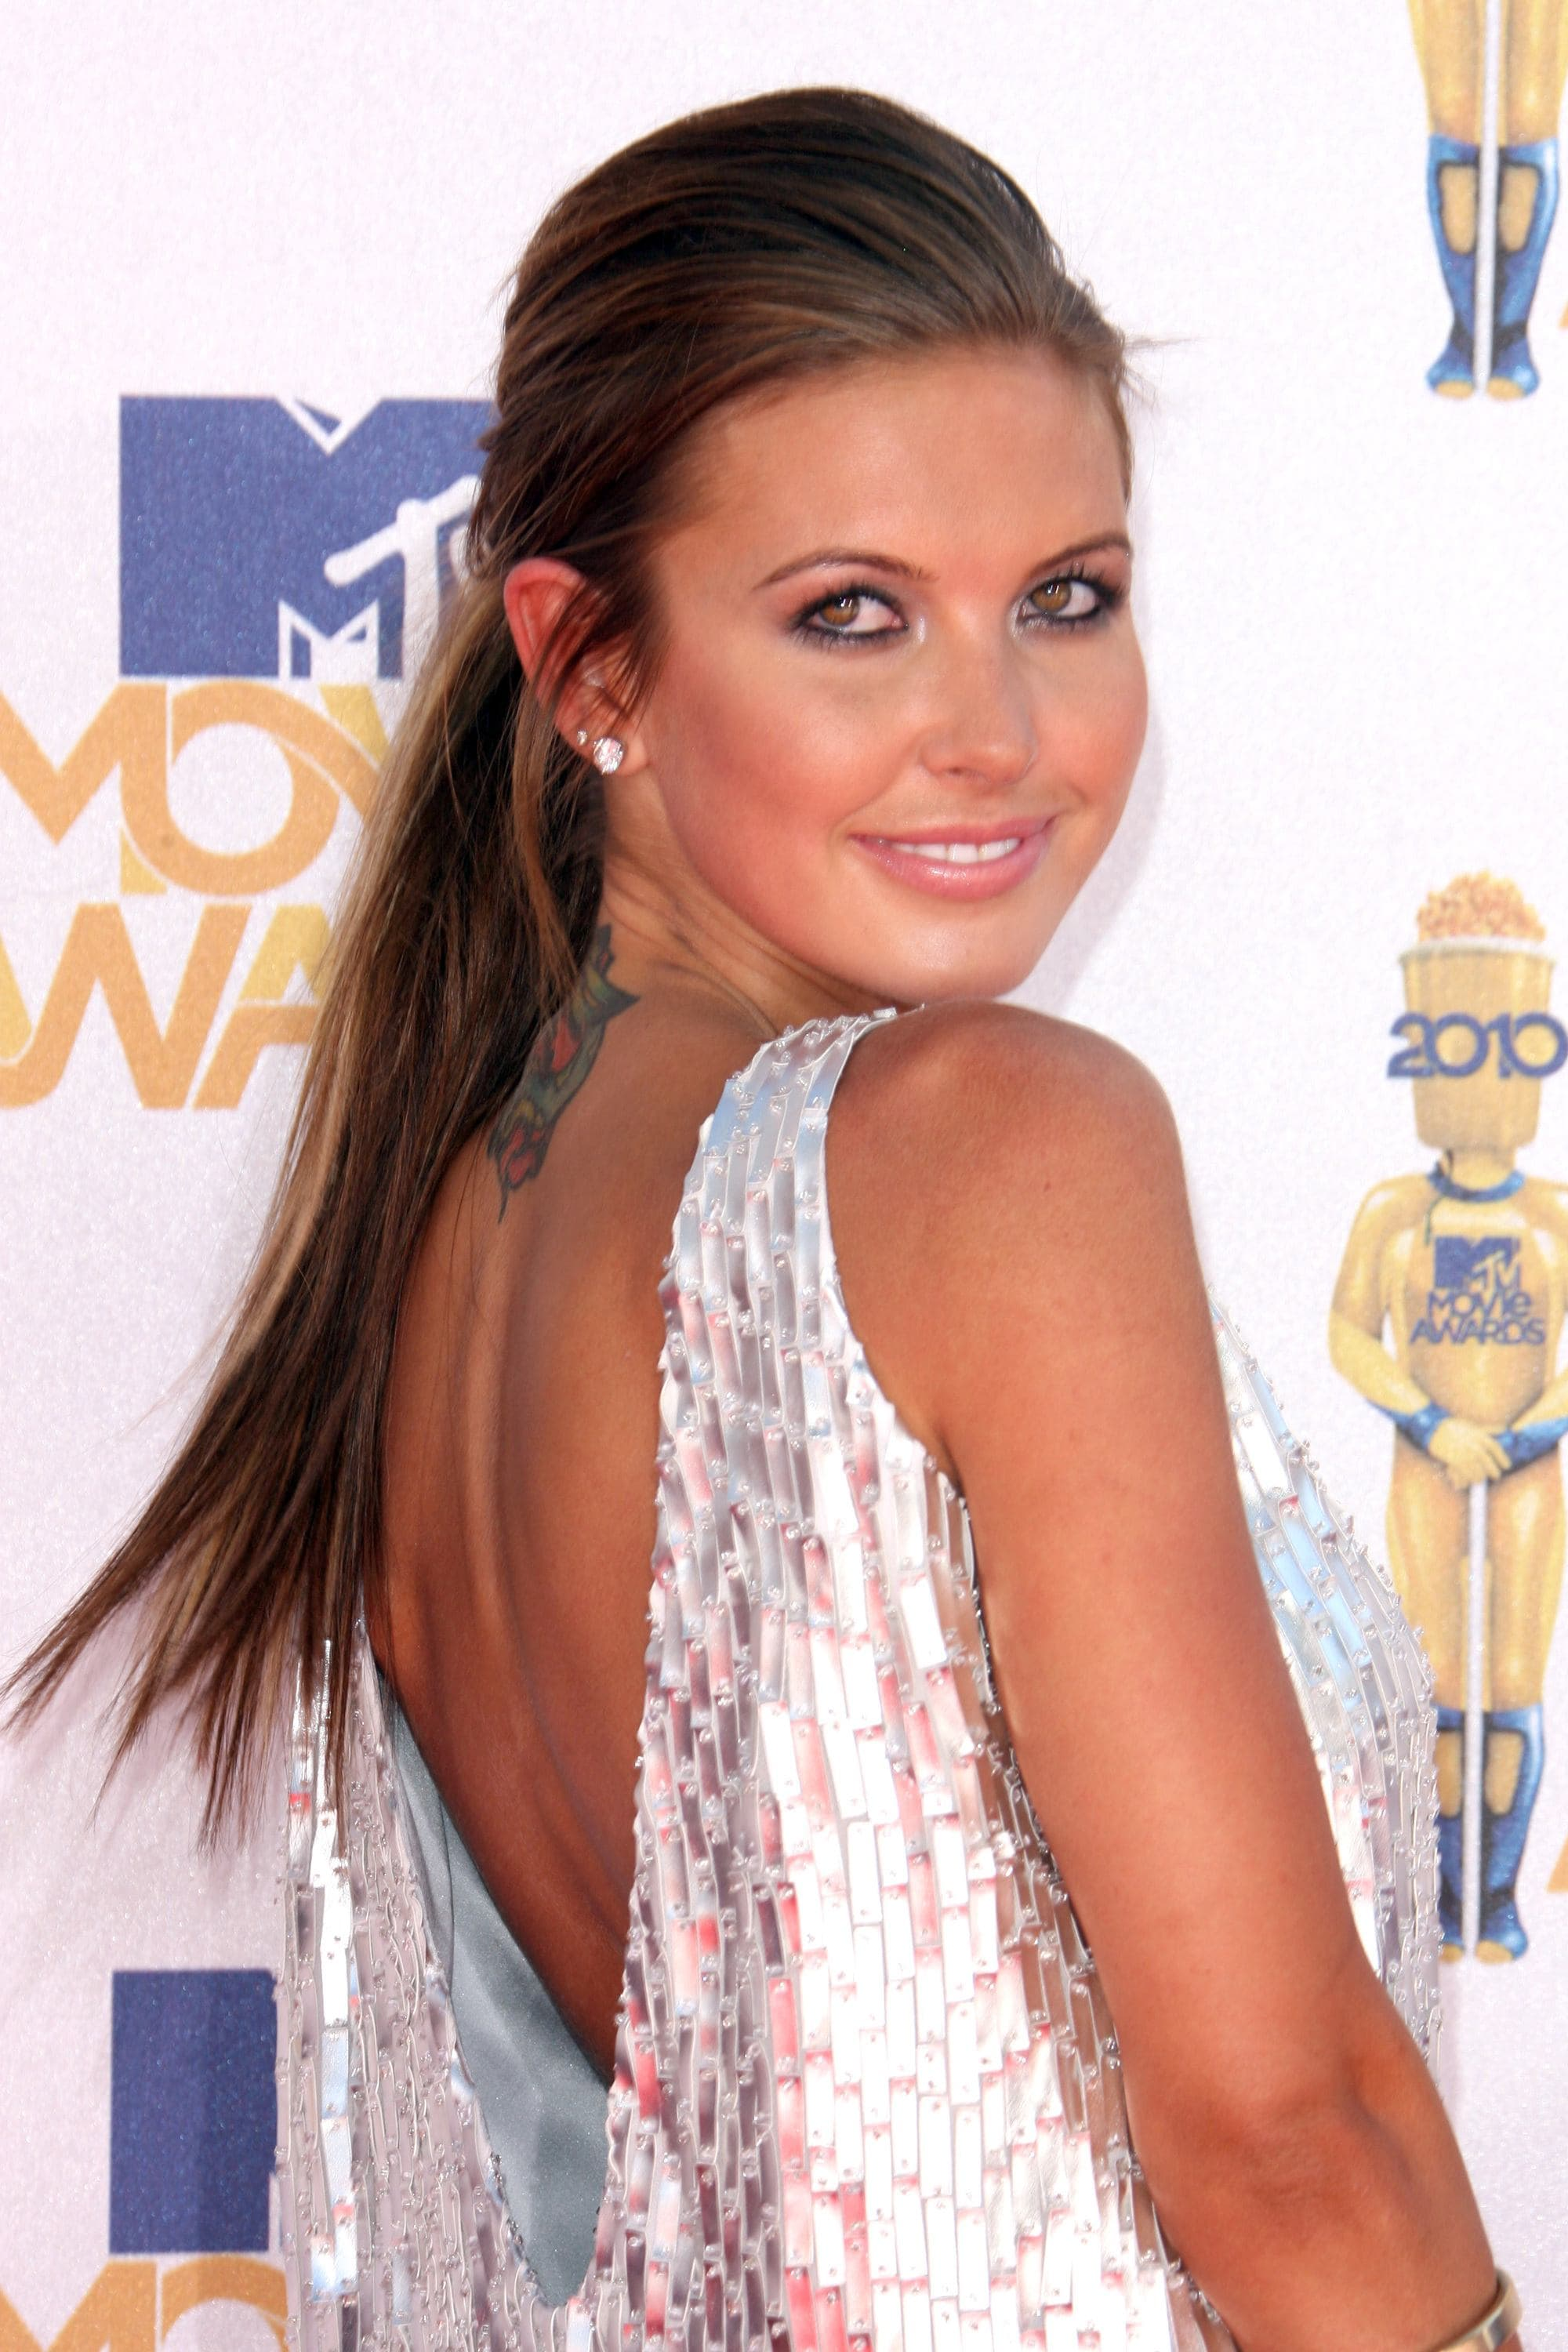 Audrina Patridge from MTV's The Hills on the red carpet with her dark brunette hair in a long straight ponytail